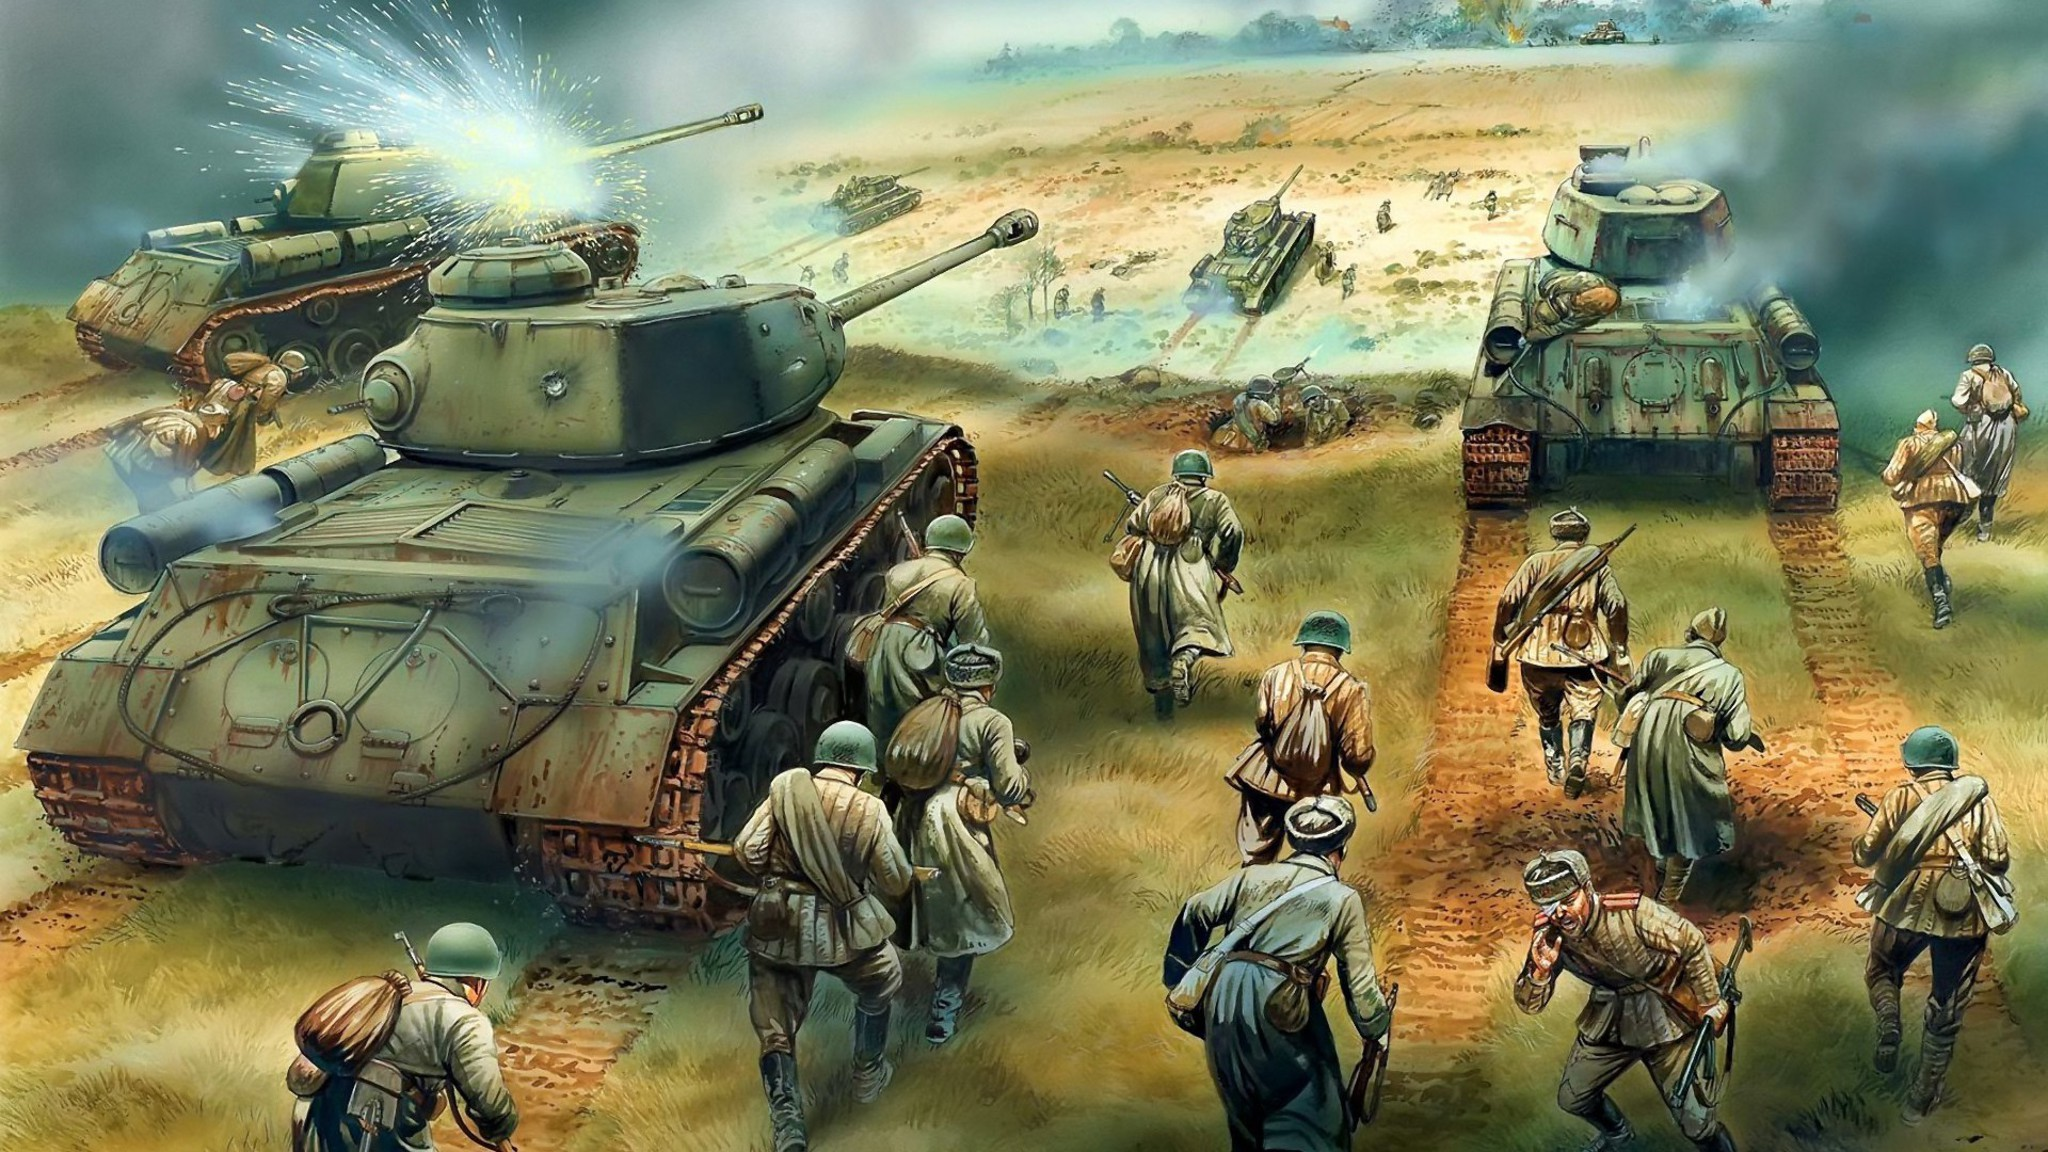 Soldiers war battlefield tanks wallpaper - Battlefield screensaver ...